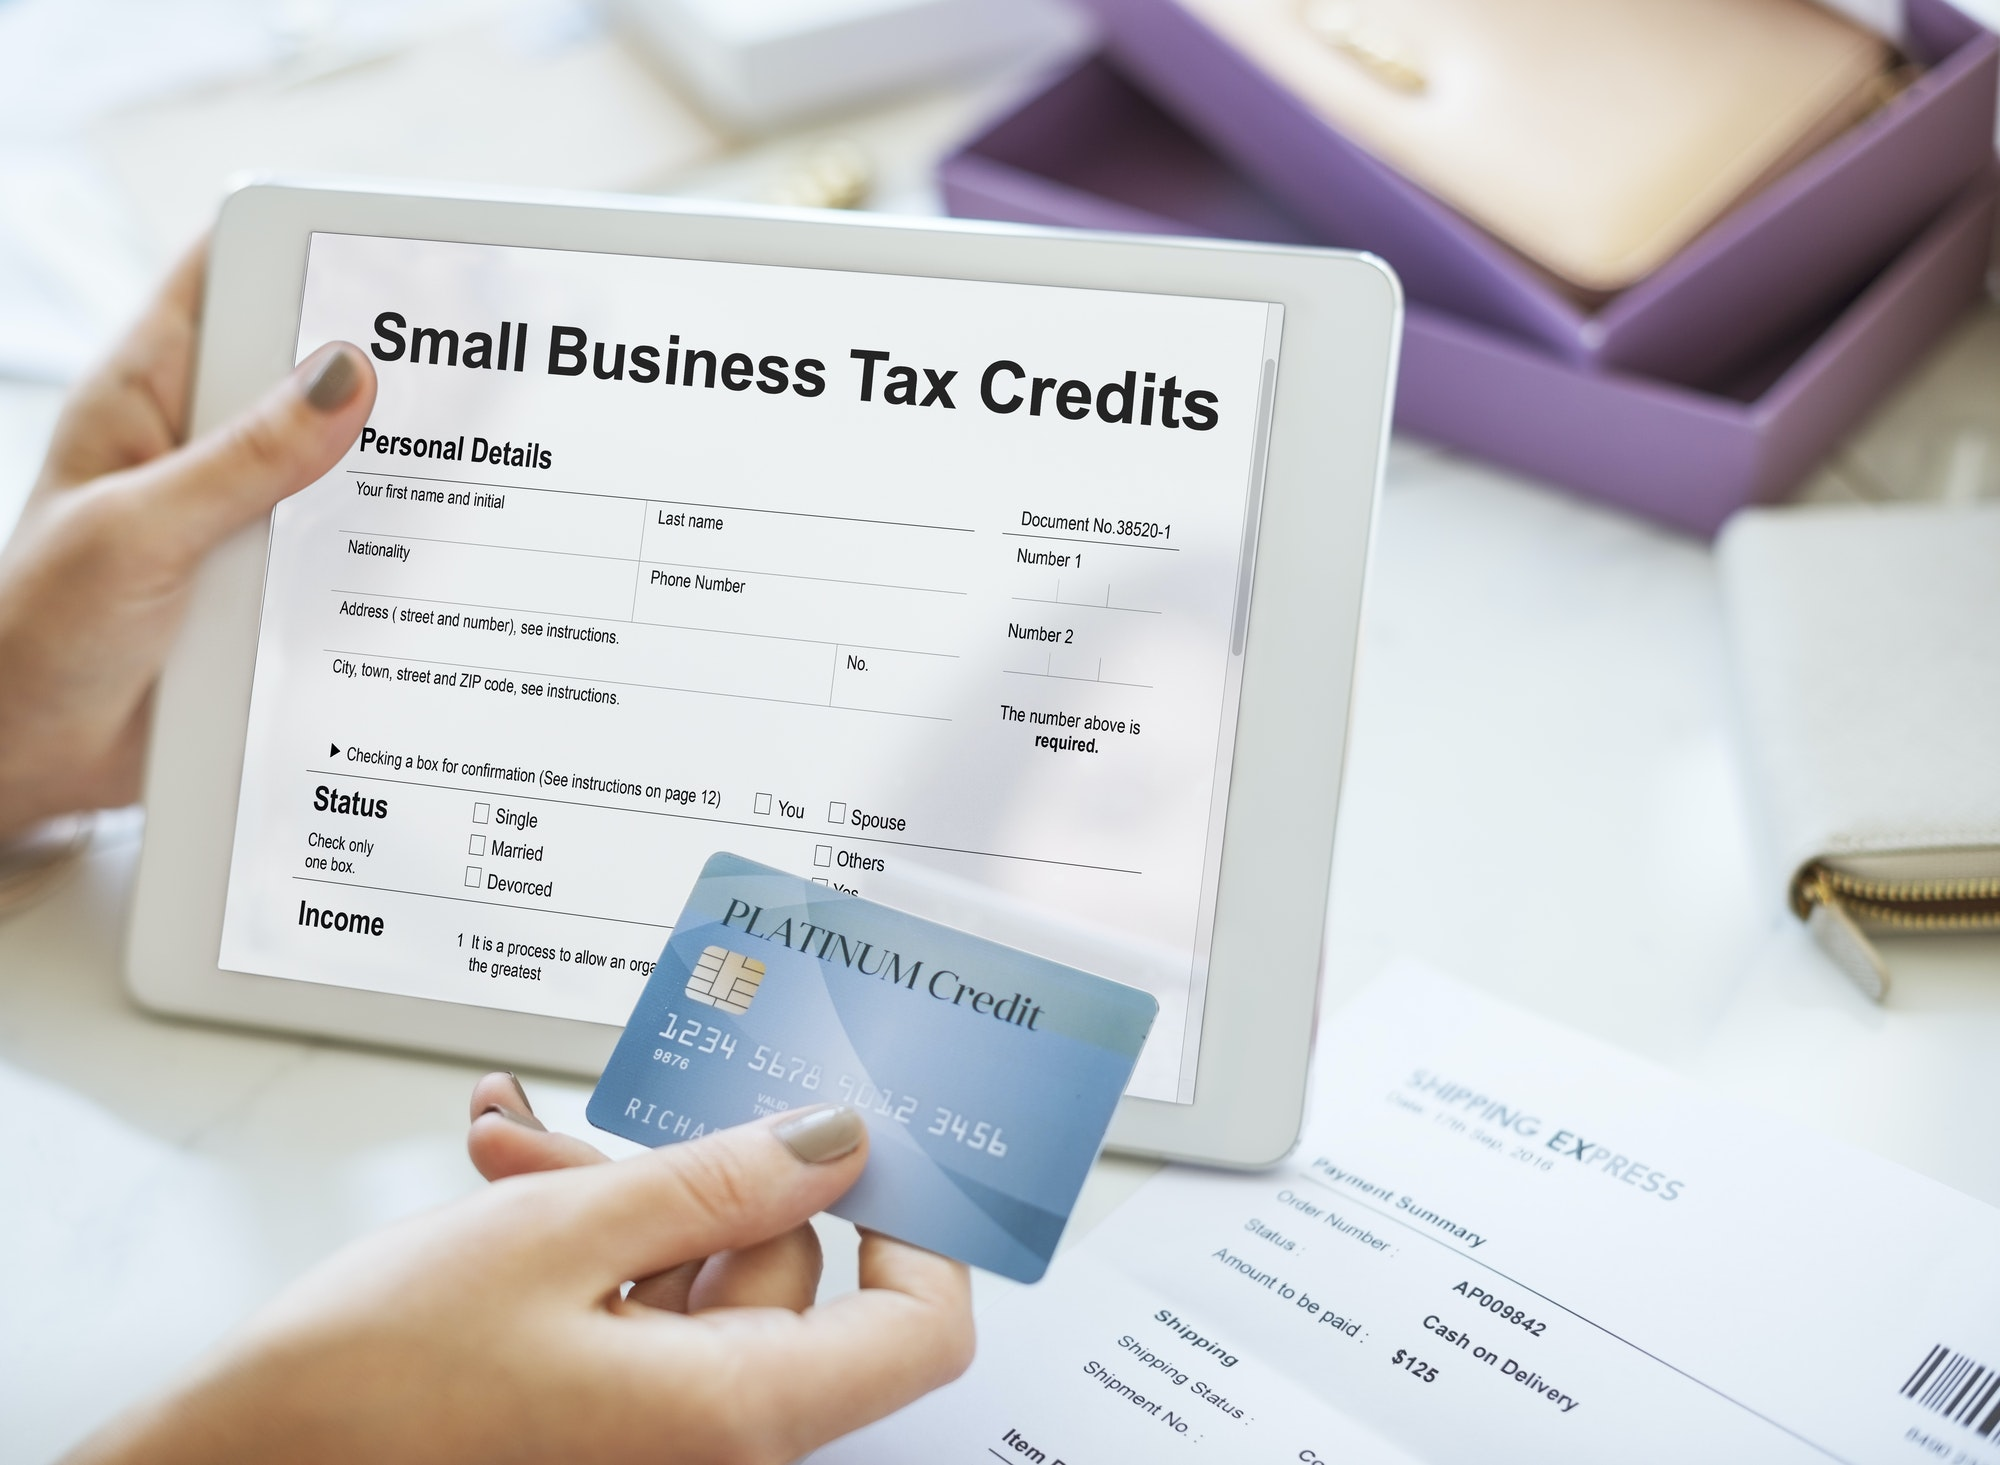 Crucial Tax Deductions Every Small Business Owner Should Know